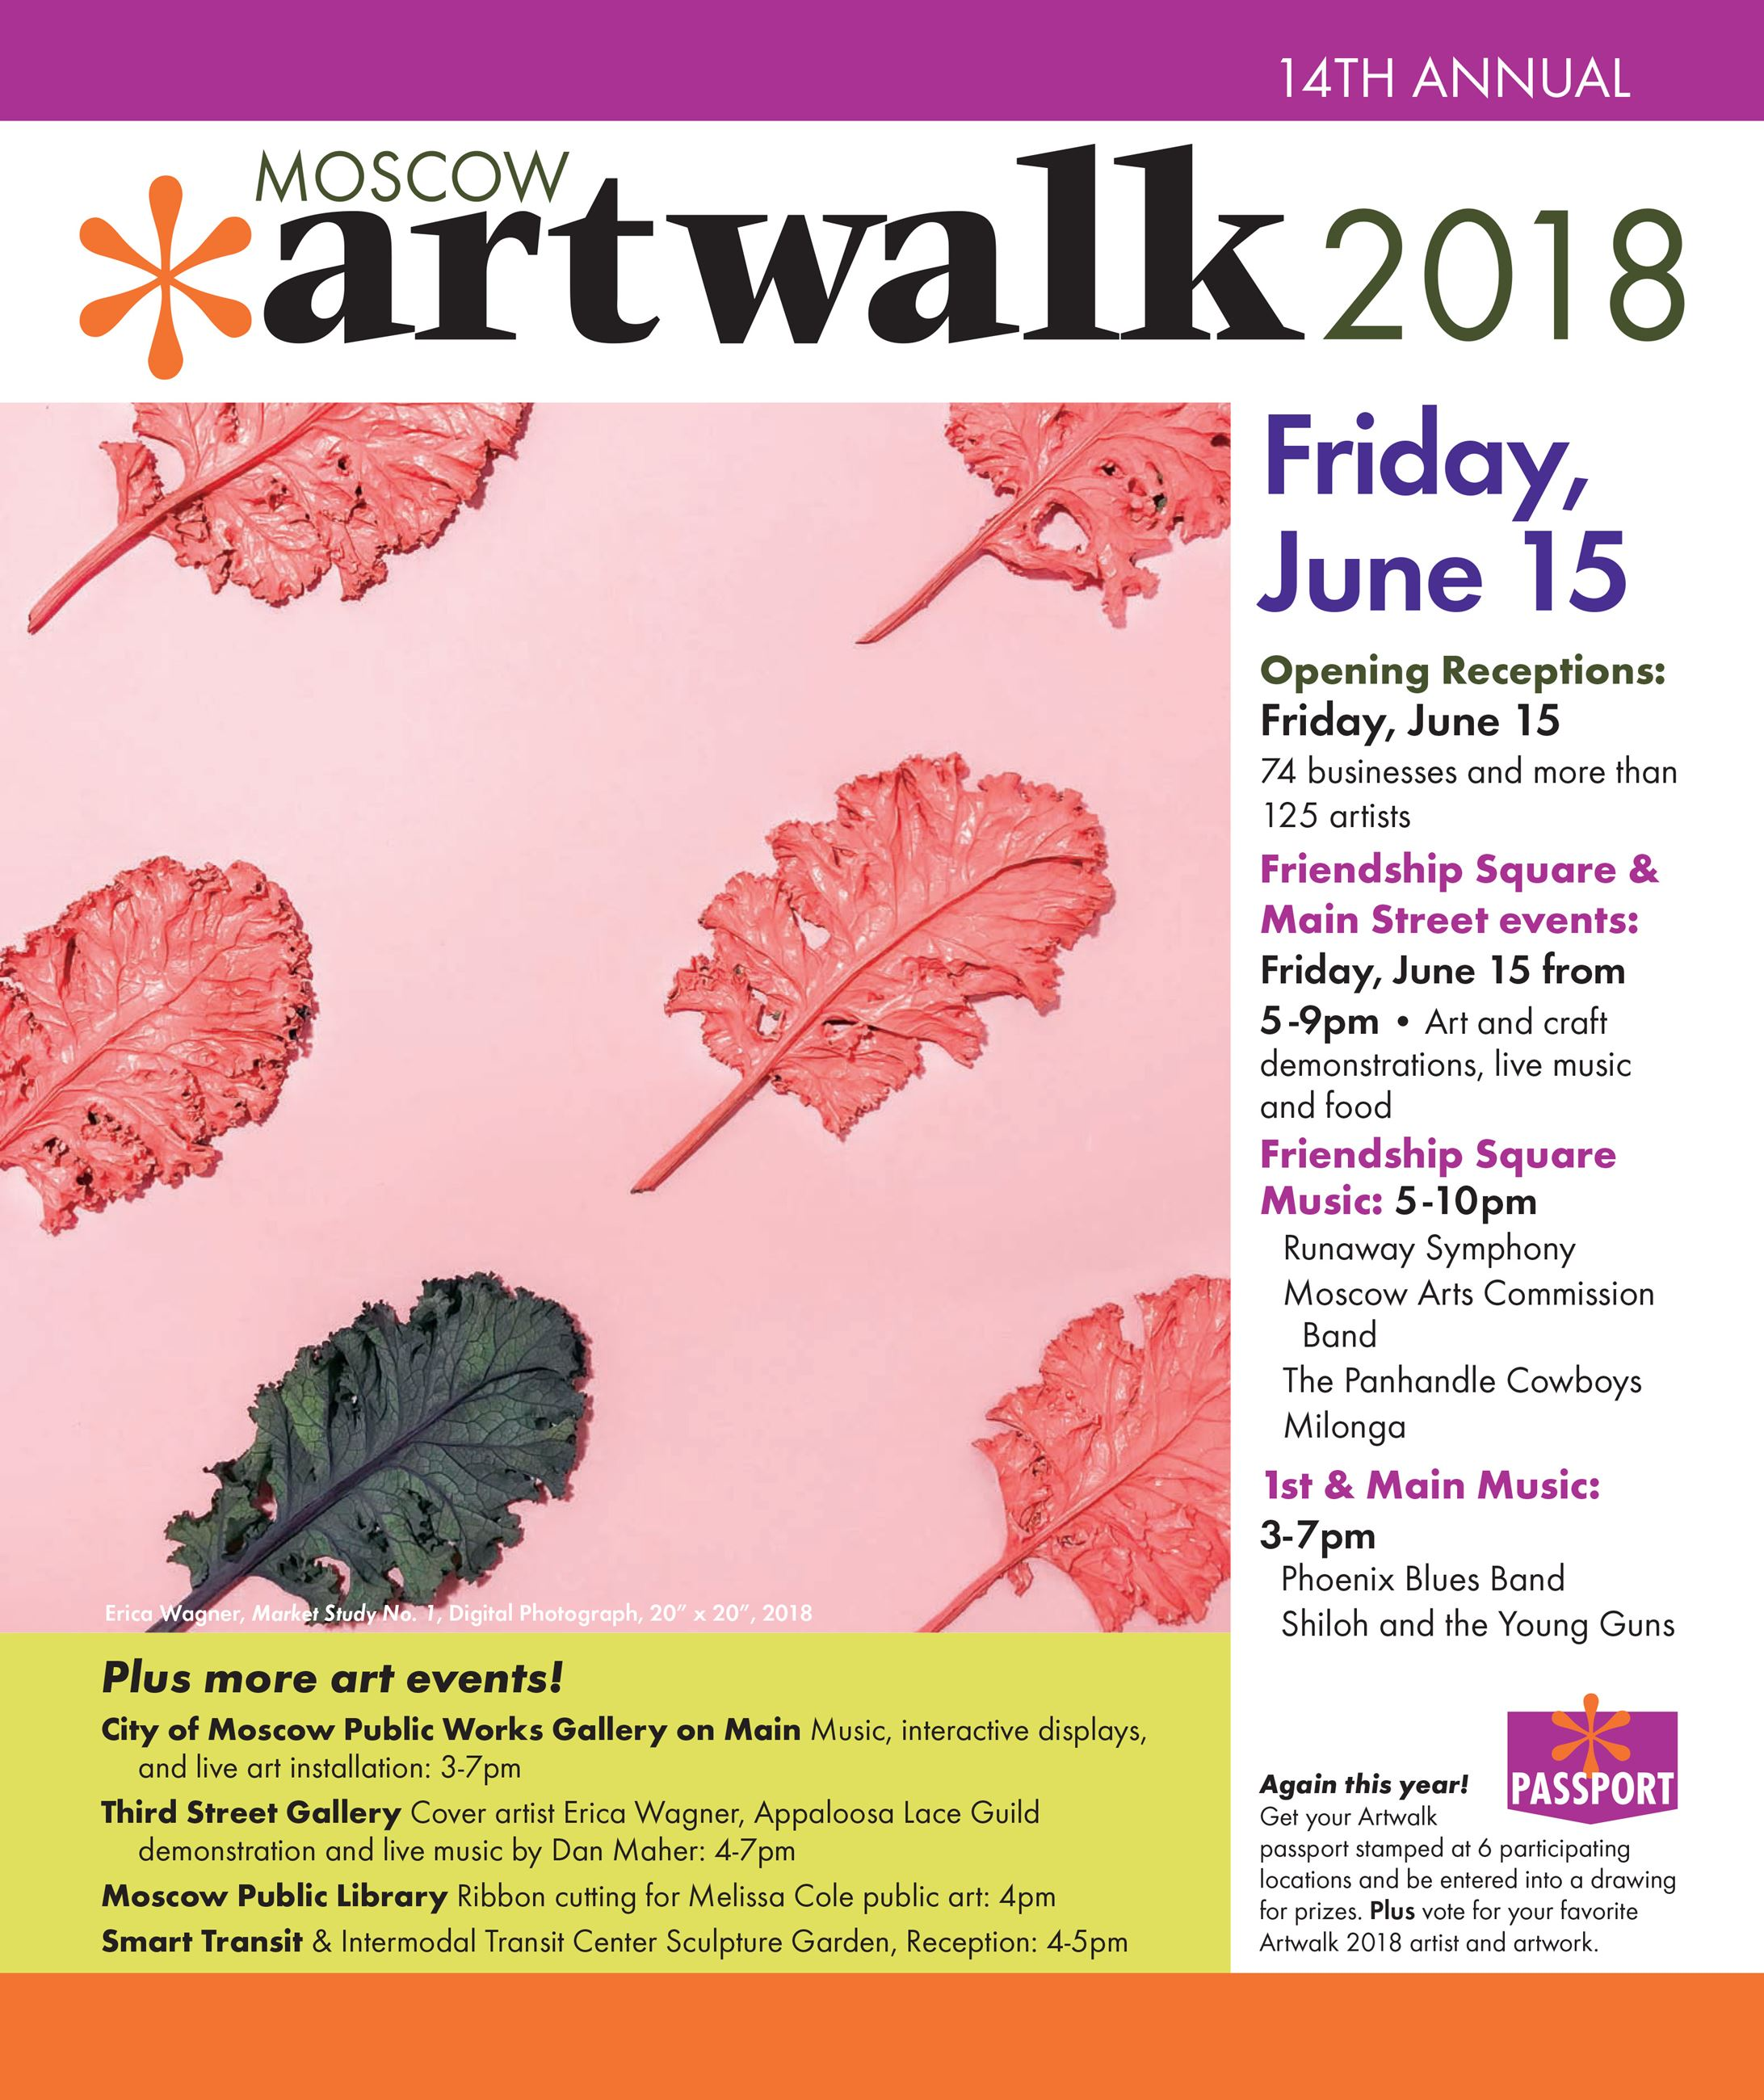 Front of the Artwalk 2018 brochure with information about the event